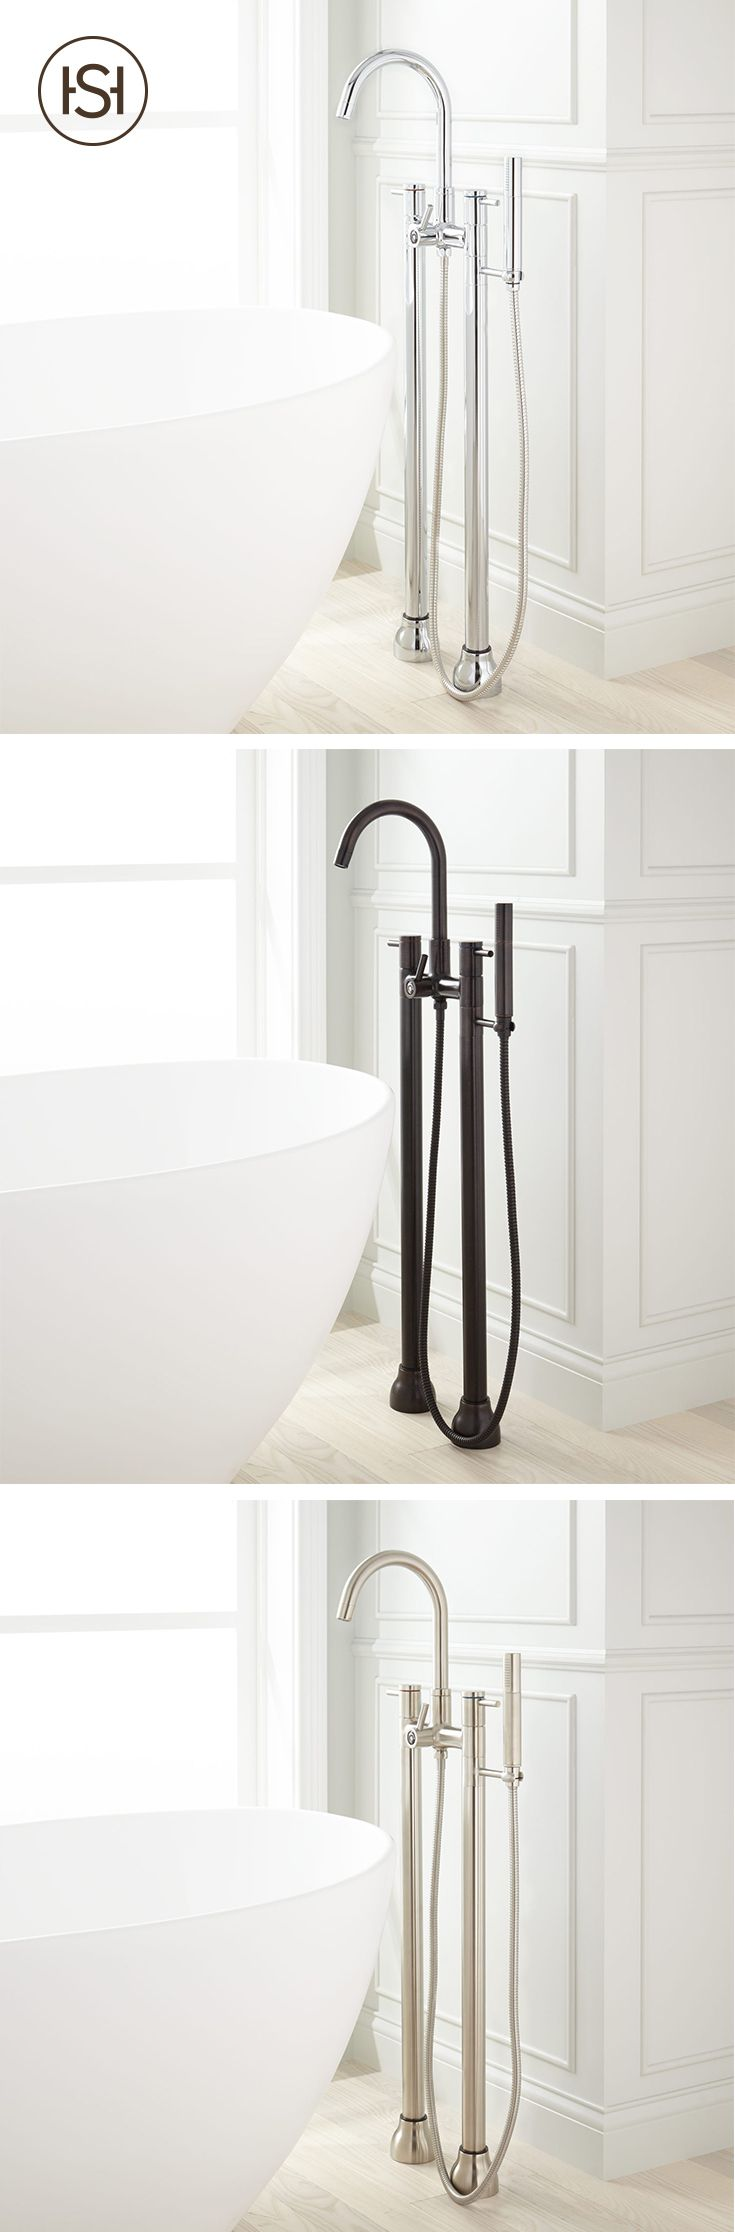 Featuring a streamlined design on the handles and hand shower, the Tolovana Freestanding Tub Faucet with Hand Shower is a sleek addition to your bathroom. The dark oil-rubbed bronze finish can add some bold contrast when paired with a stark white tub.